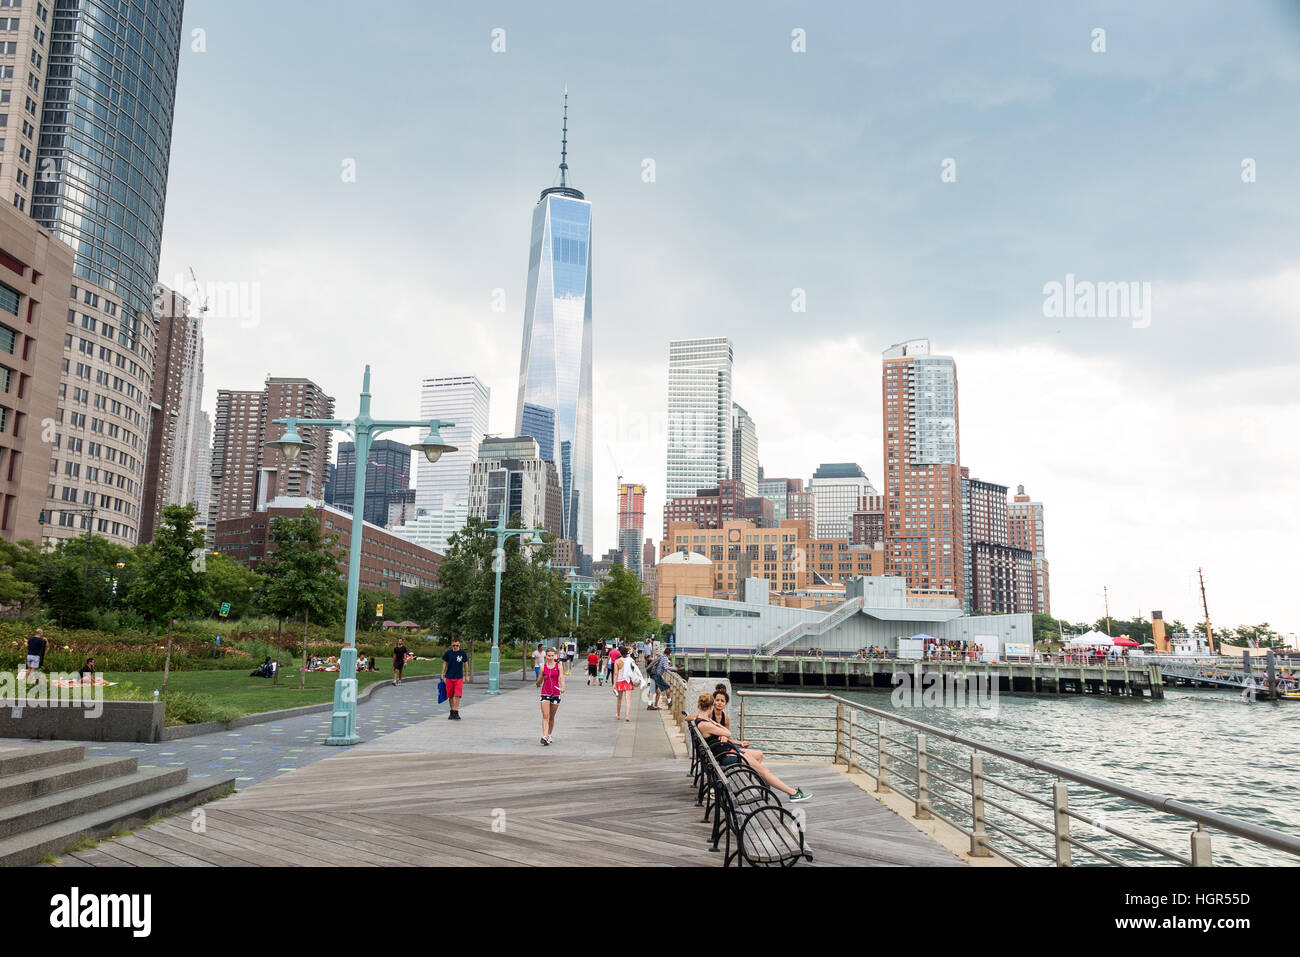 One World Trade Center building as seen from the streets of New York City - Stock Image